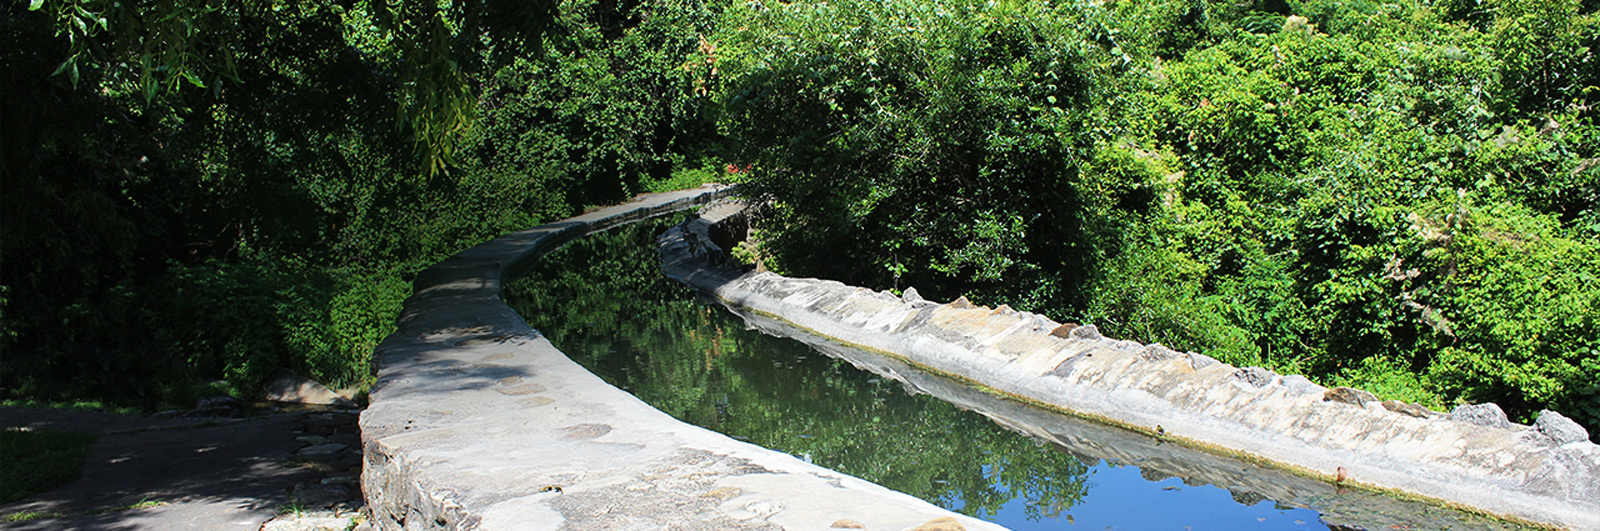 The Acequia